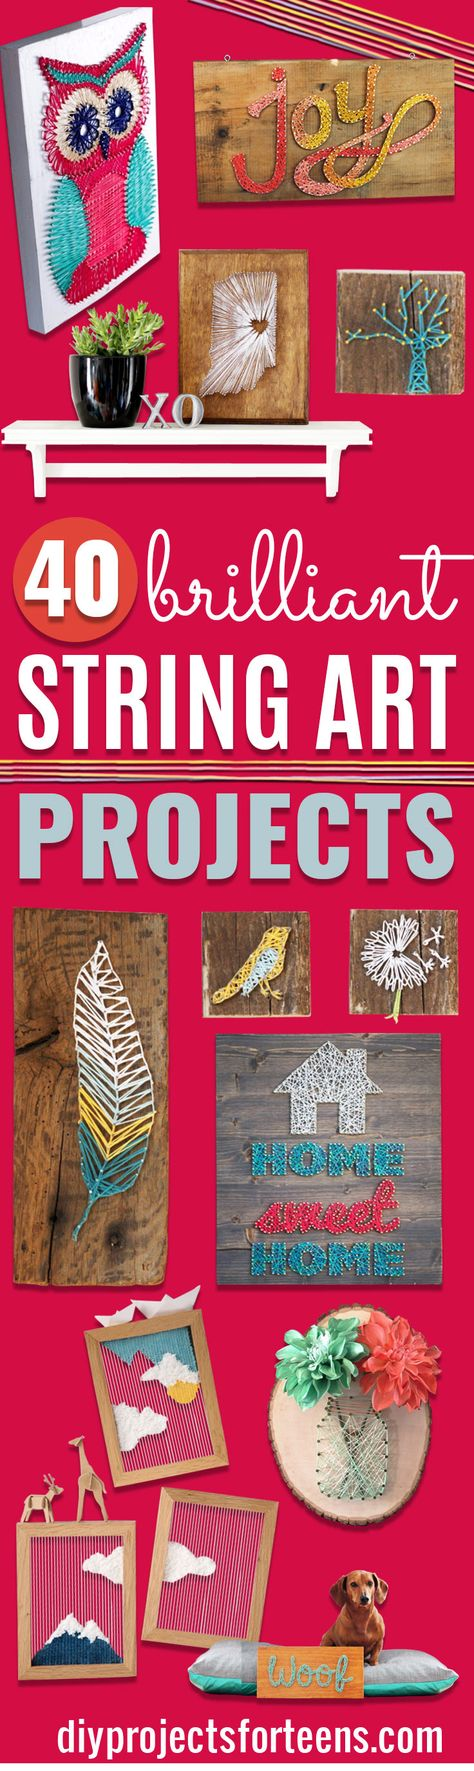 DIY String Art Projects - Cool, Fun and Easy Letters, Patterns and Wall Art Tutorials for String Art - How to Make Names, Words, Hearts and State Art for Room Decor and DIY Gifts - fun Crafts and DIY Ideas for Teens and Adults http://diyprojectsforteens.com/diy-string-art-projects